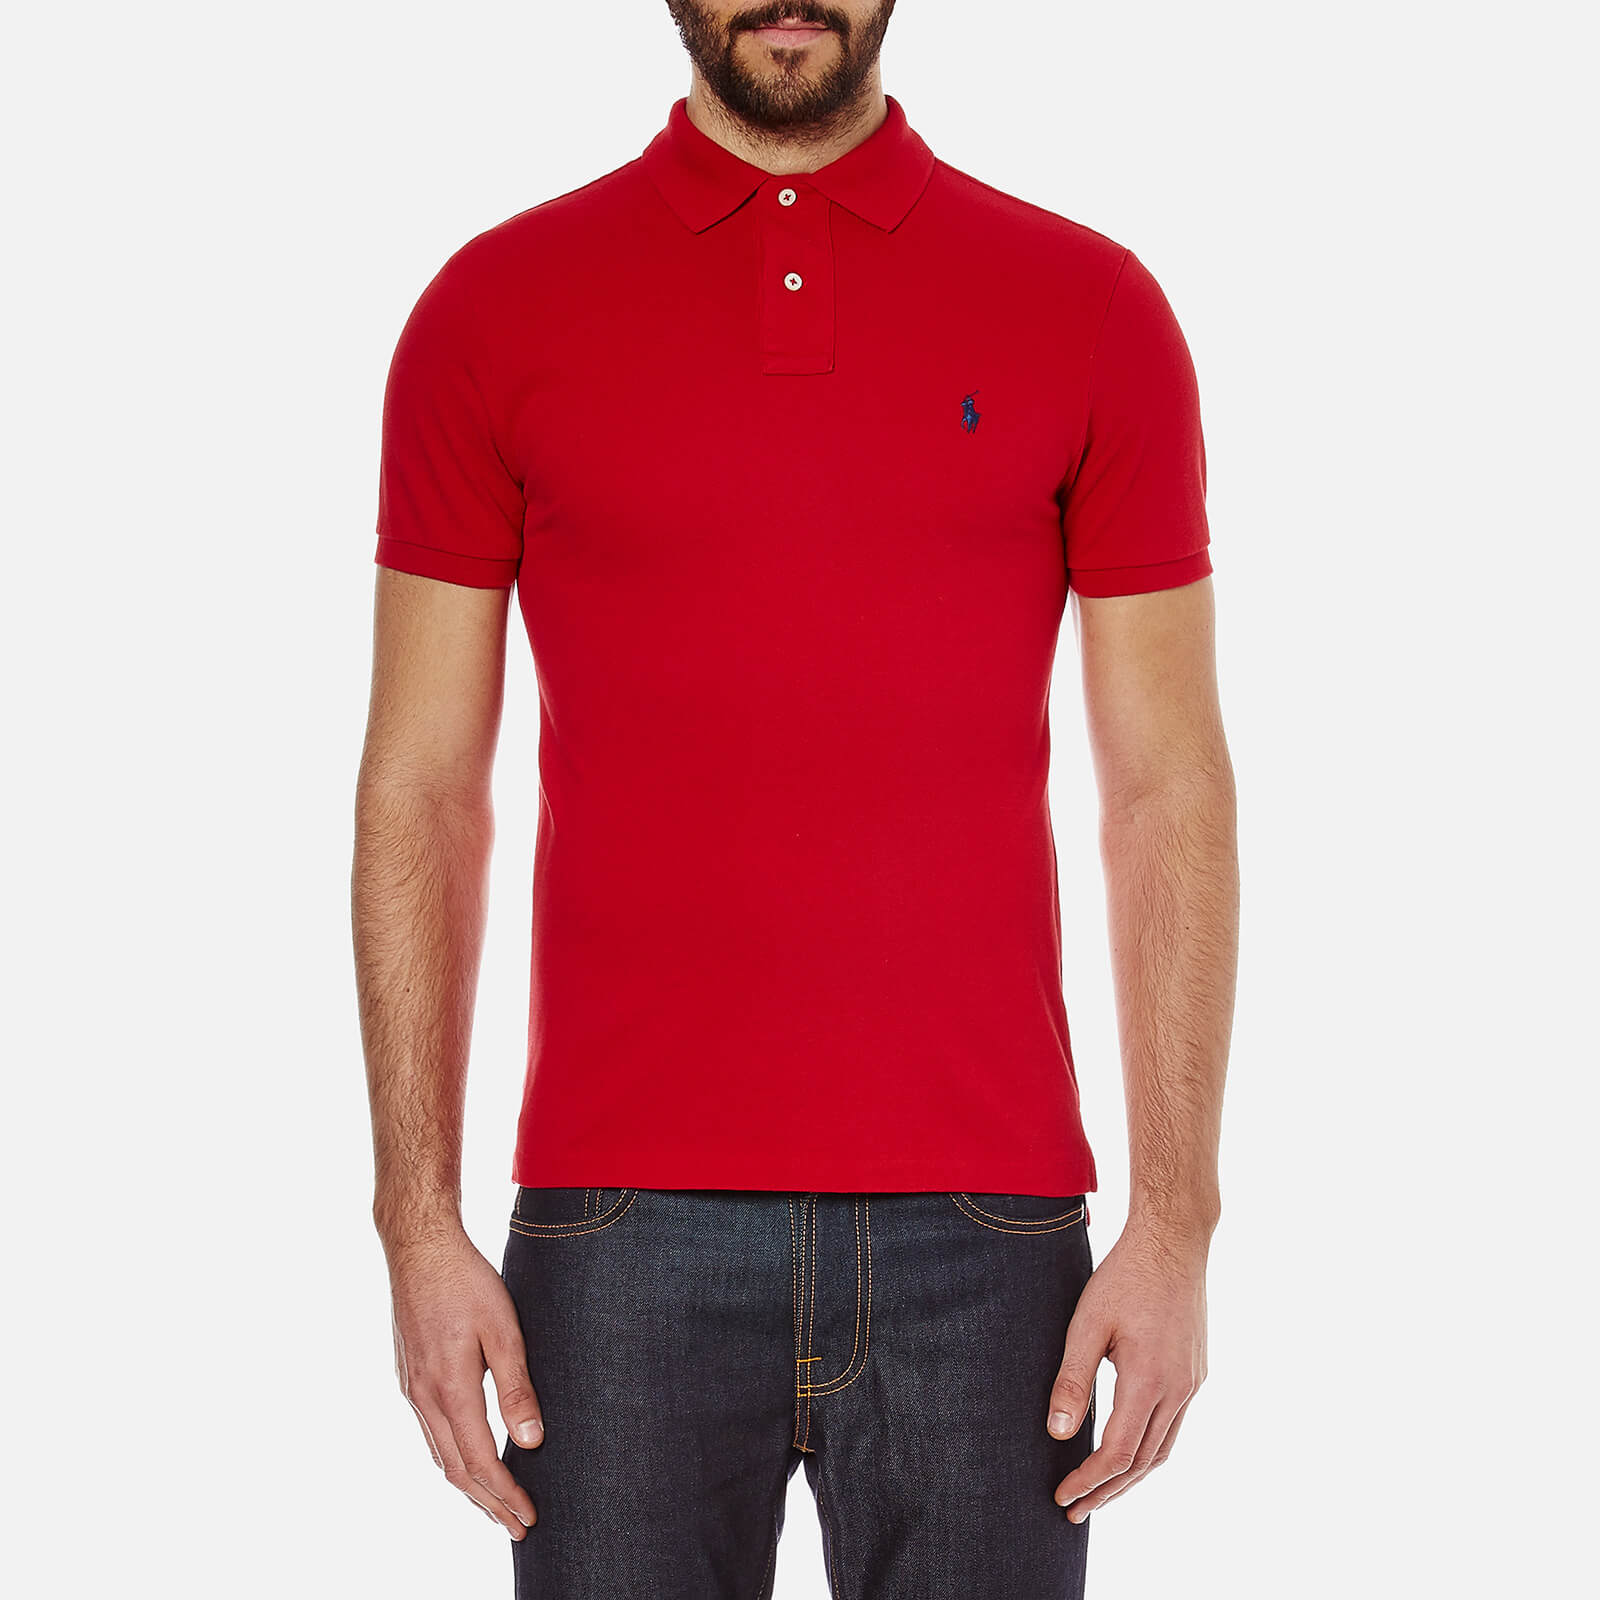 abcca818ebdb2 Polo Ralph Lauren Men s Slim Fit Polo Shirt - Red - Free UK Delivery over  £50